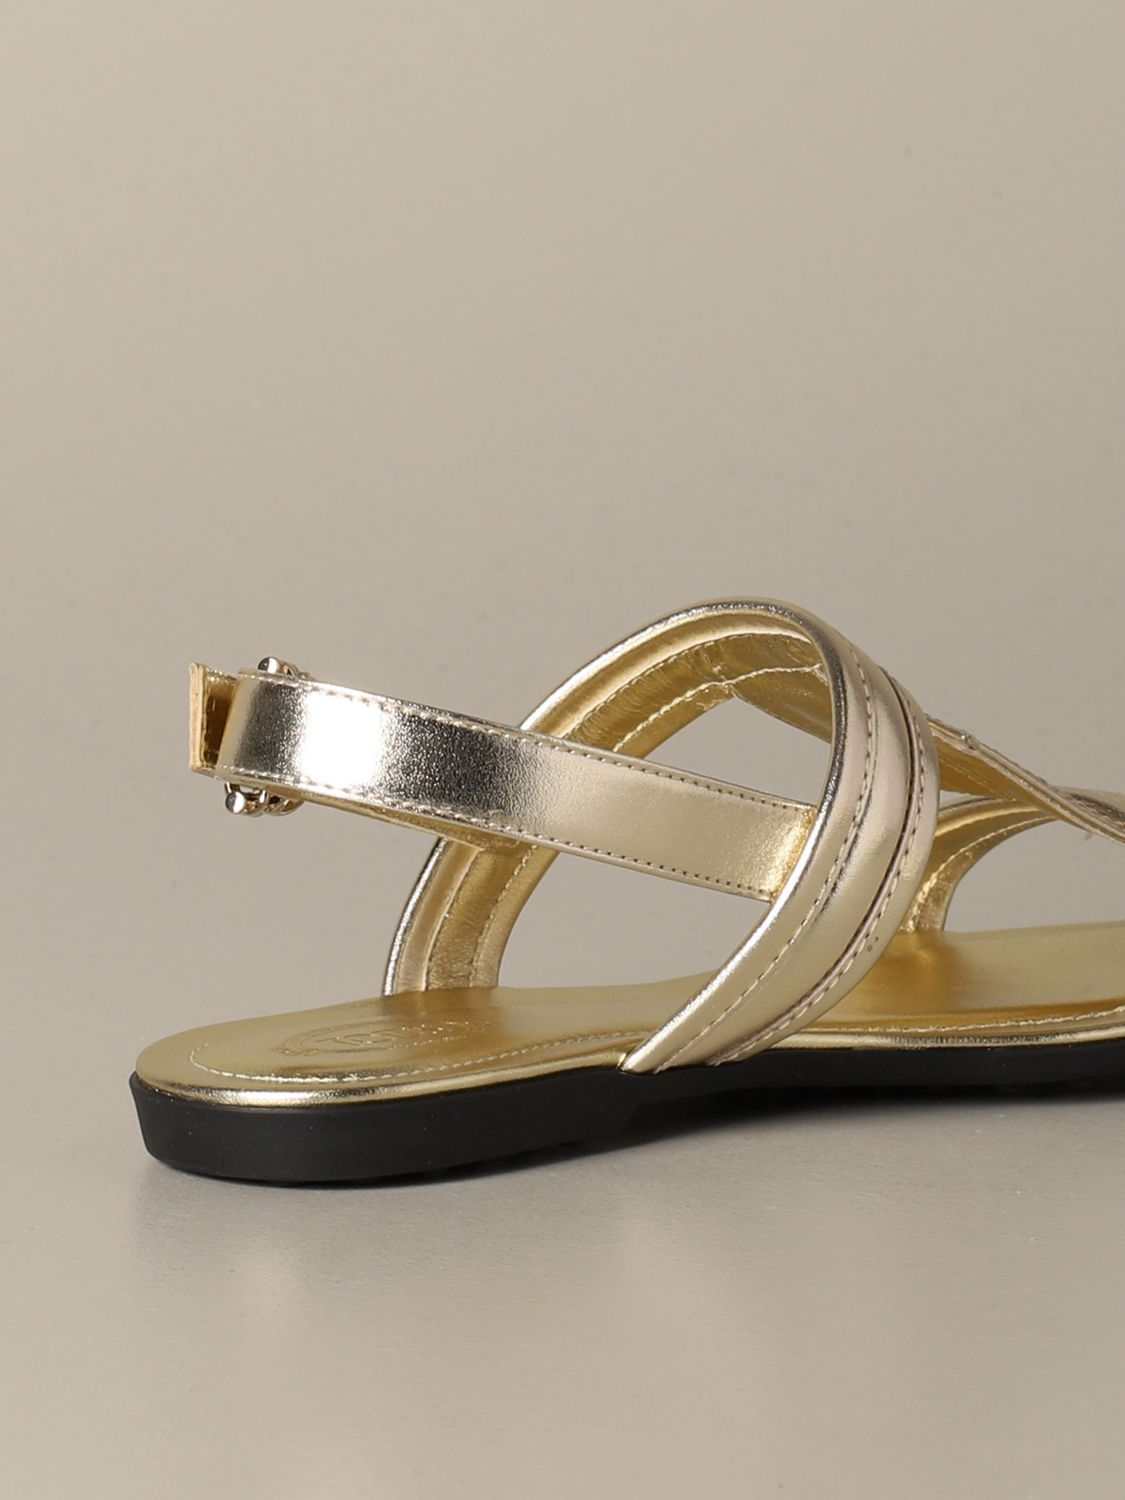 Flat sandals Tods: Shoes women Tod's gold 4